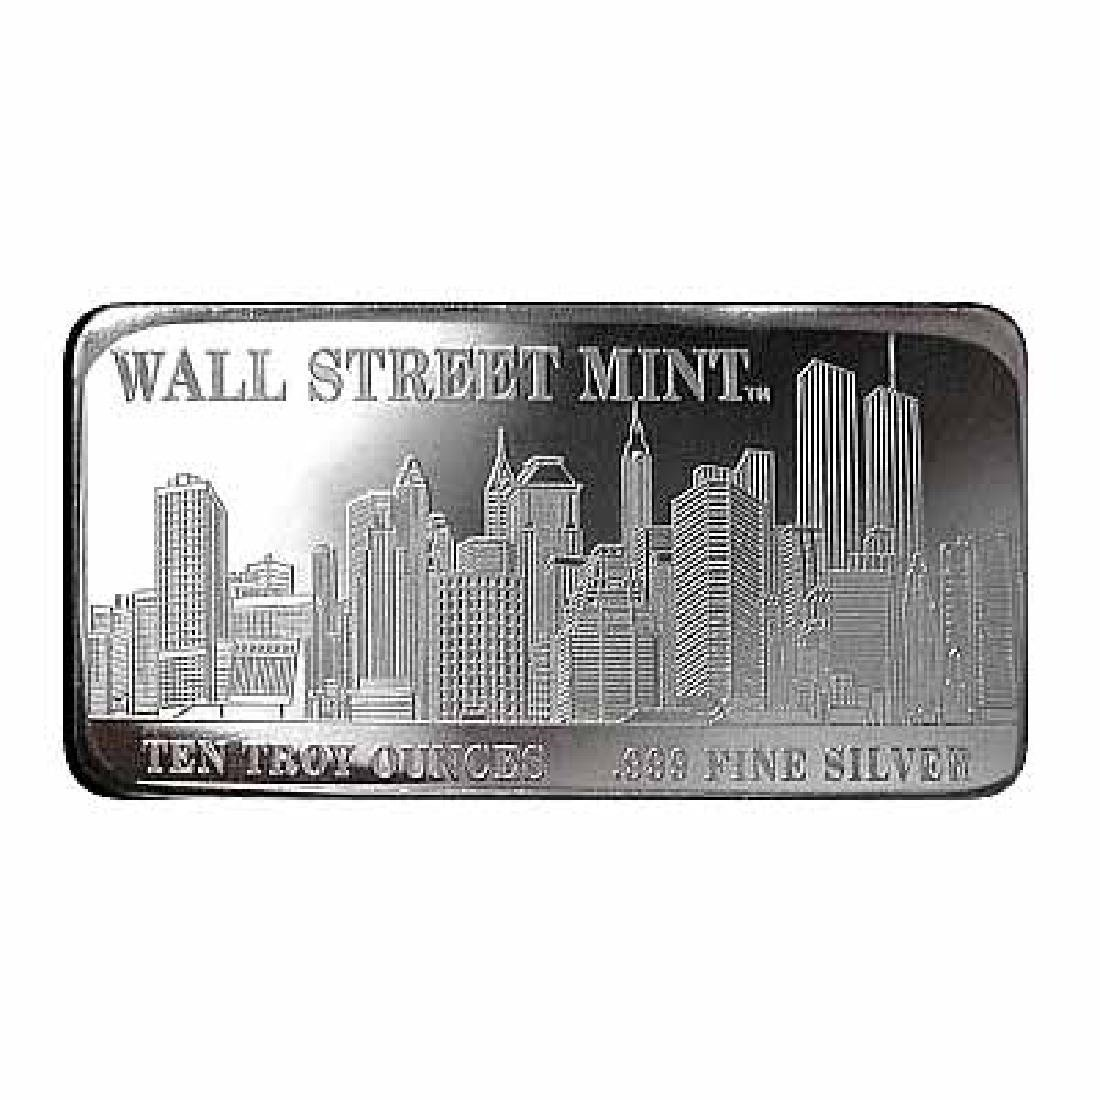 Wall Street Mint Silver Bar 10 oz